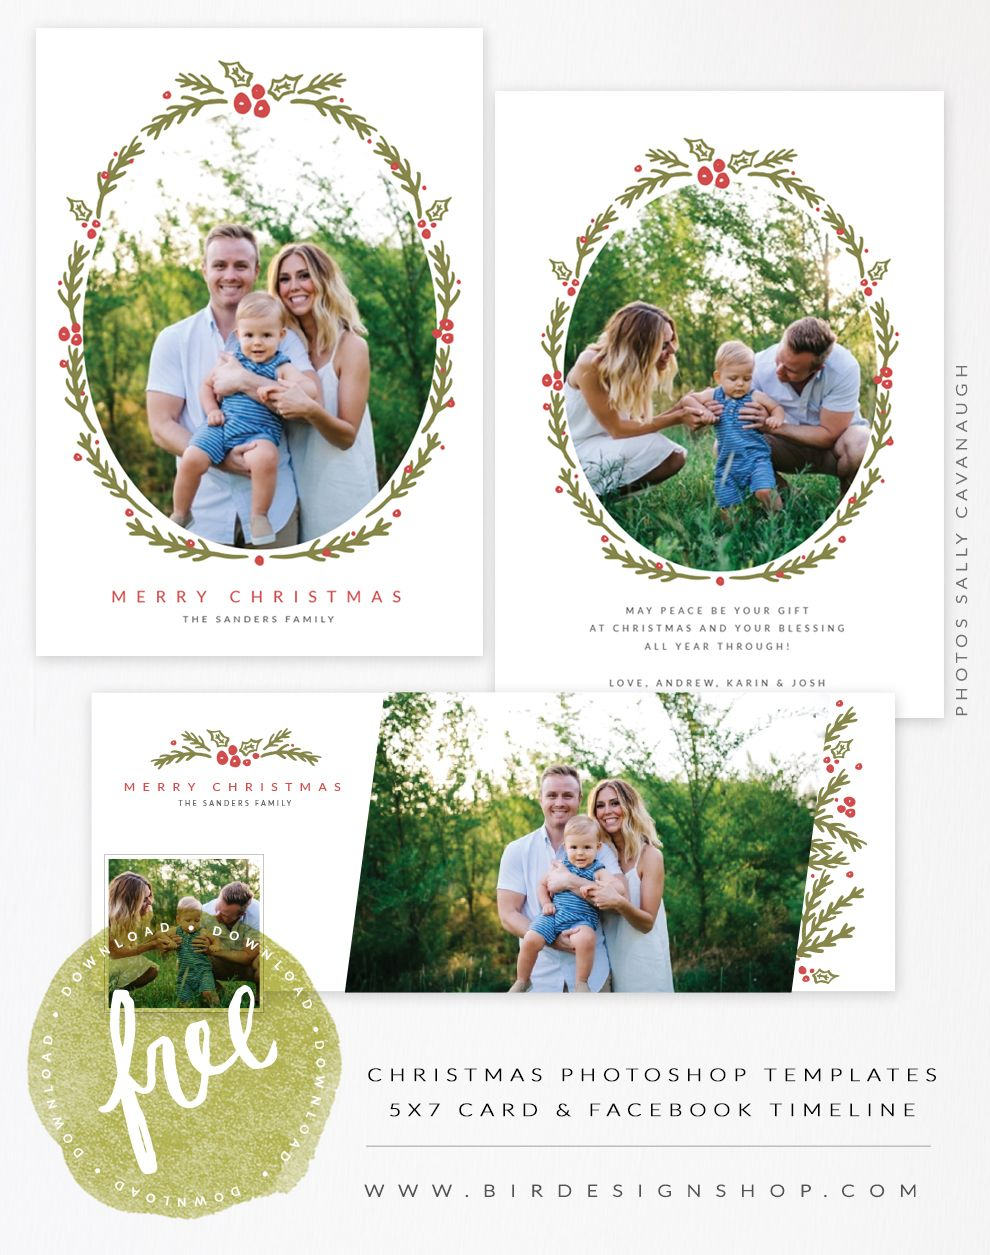 August freebie - Christmas card & FB timeline templates | Free stuff ...